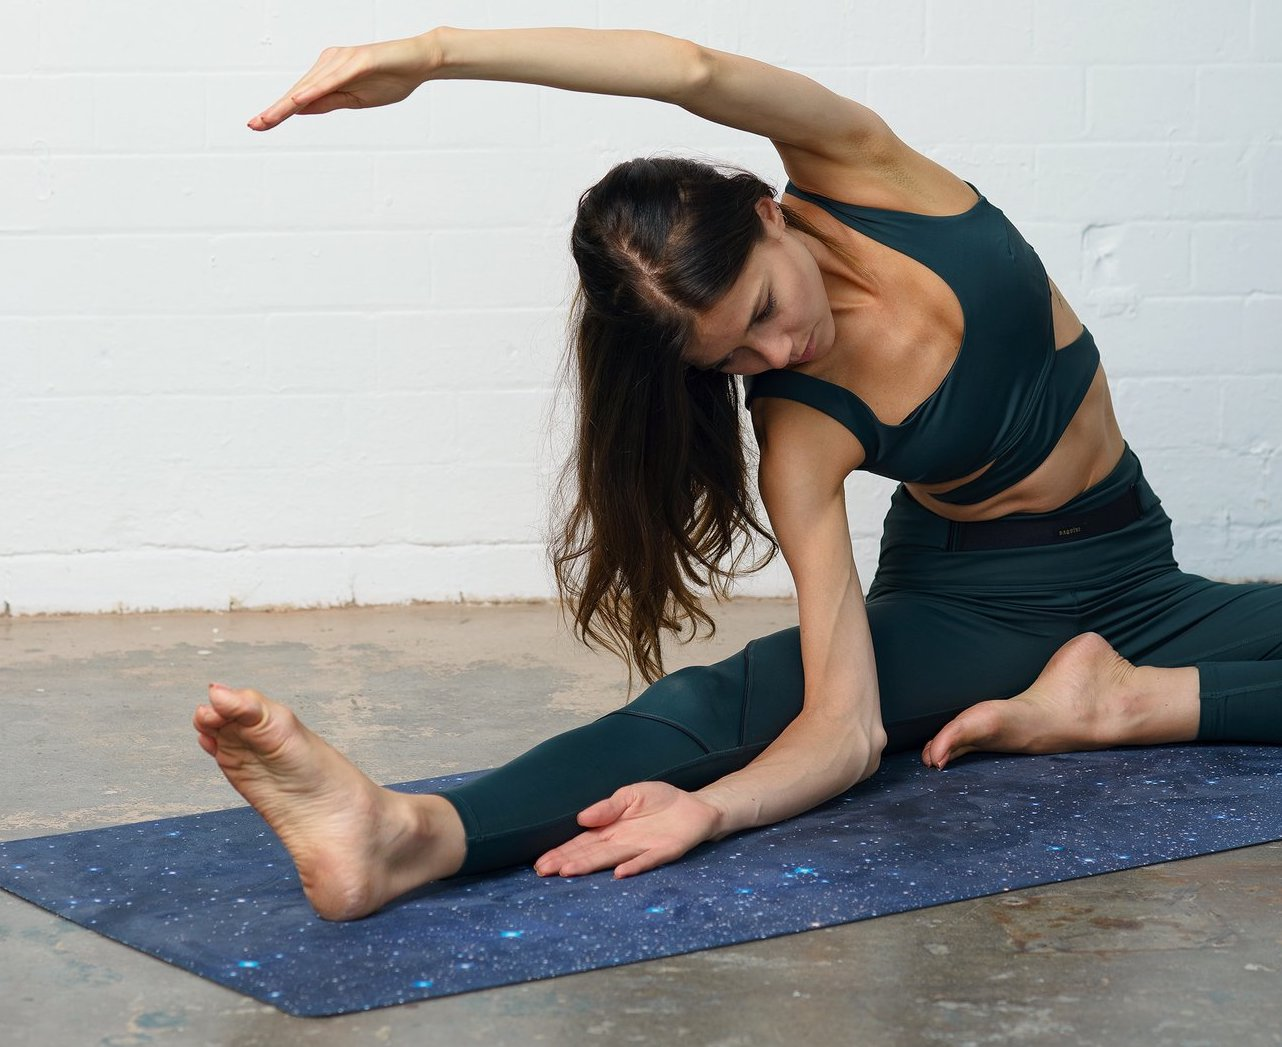 Have you tried yoga for depression relief?